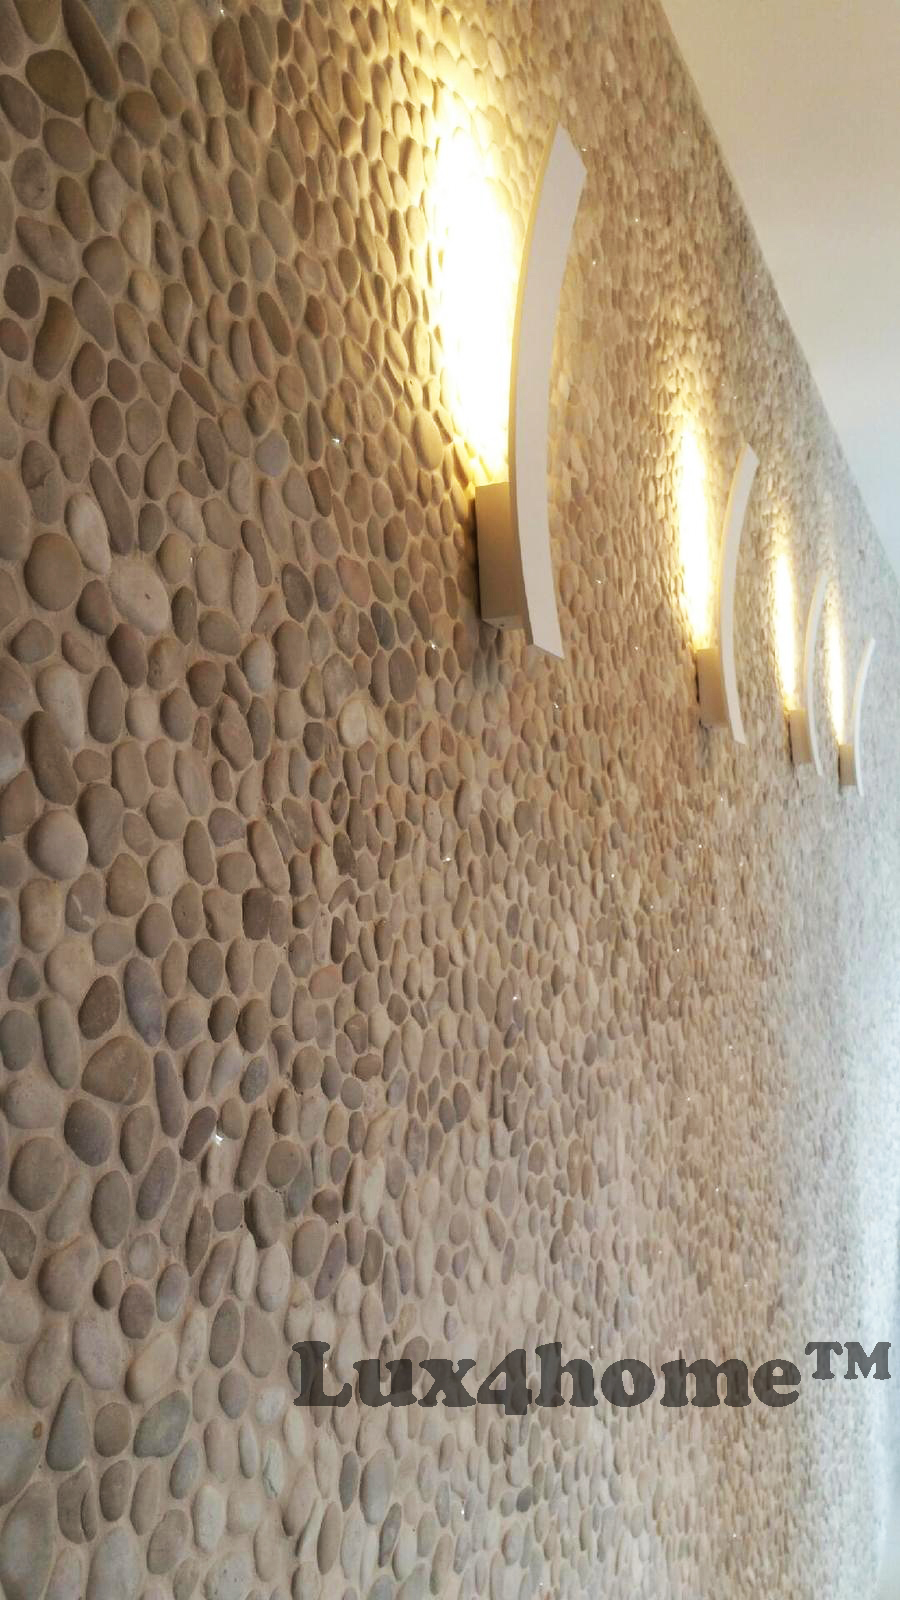 Pebble-Tile-Wall-11